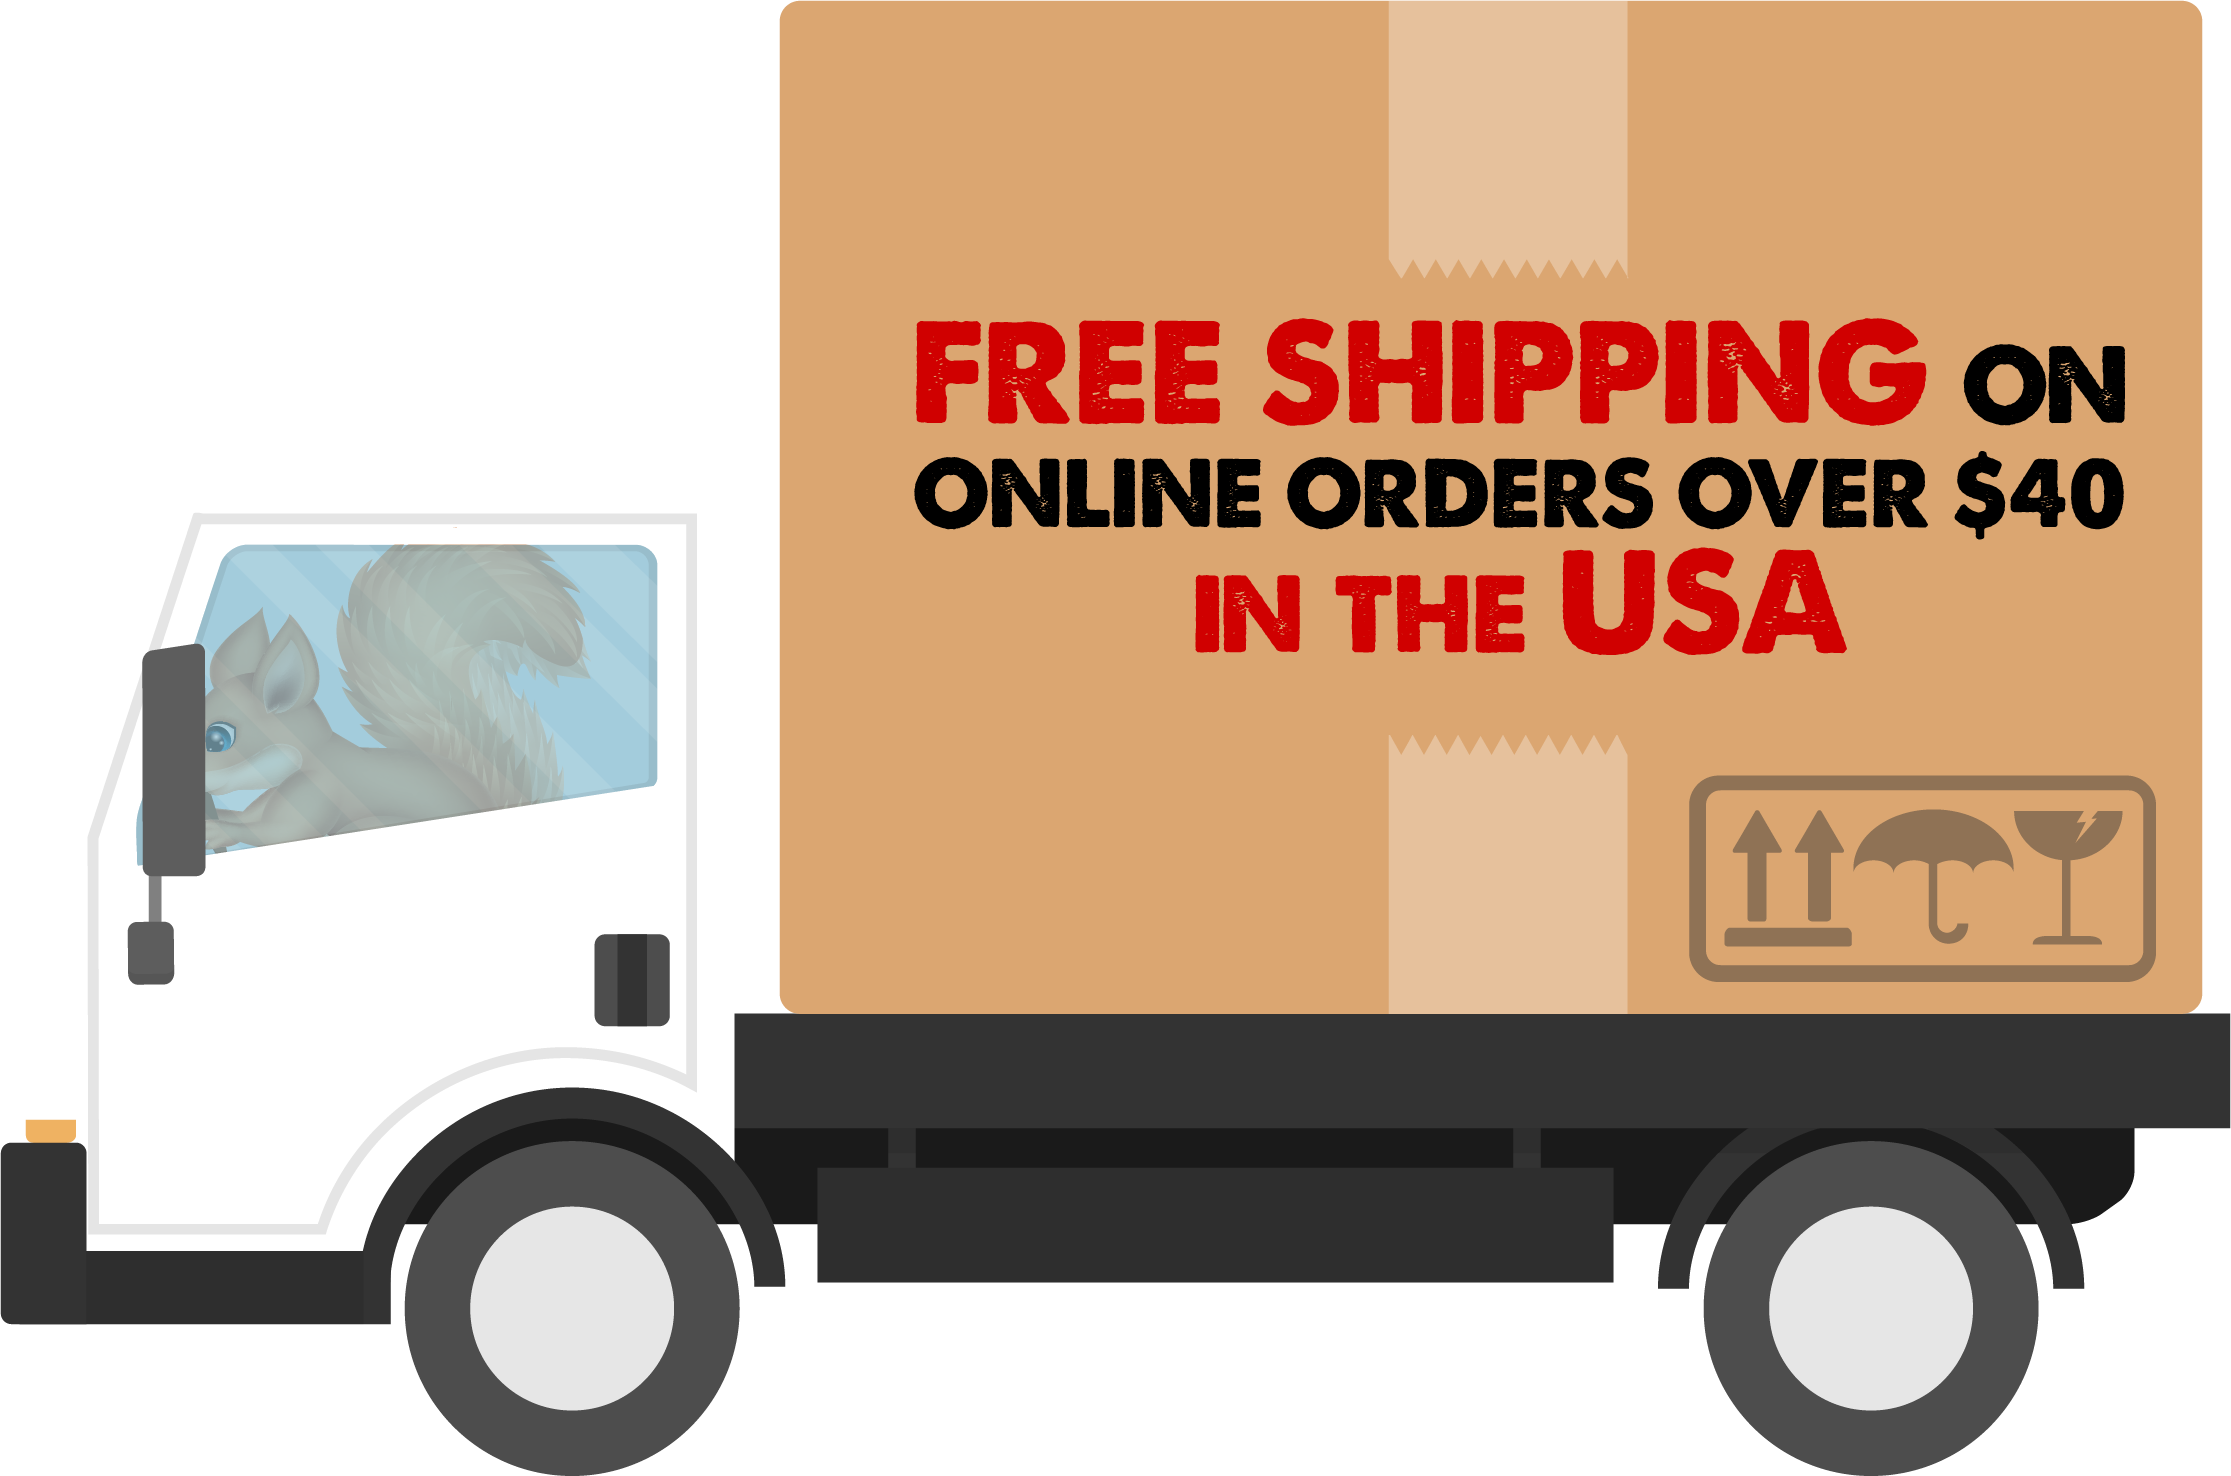 Free shipping on online orders over $40 in the USA